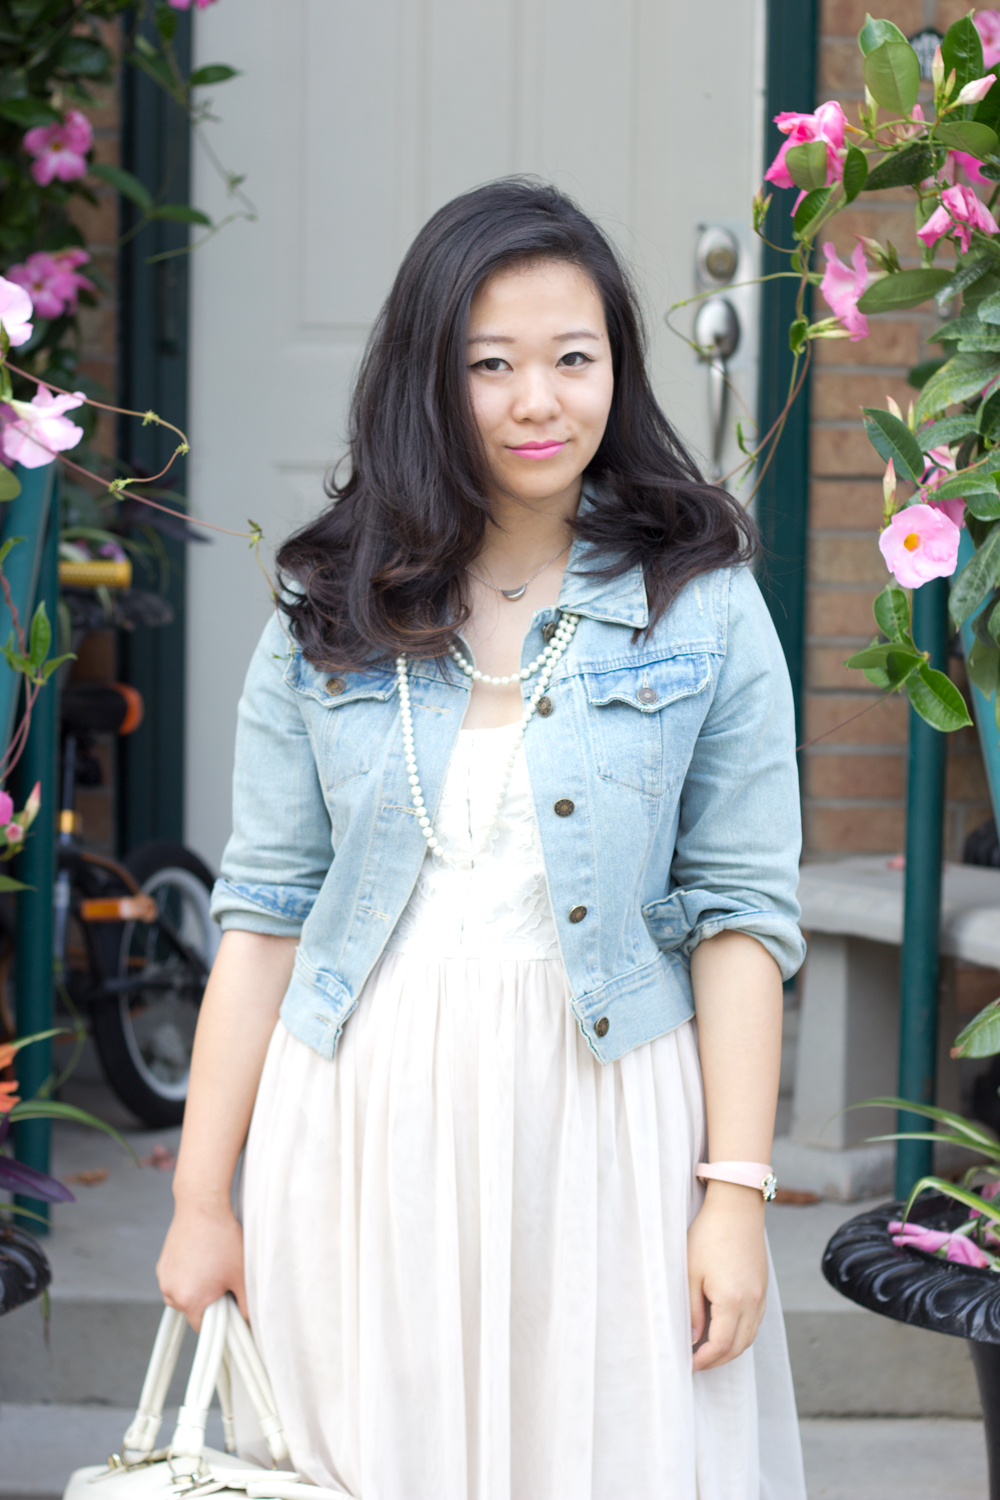 Denim-Jacket, Tulle-Dress, Pearls, Summer-Outfit